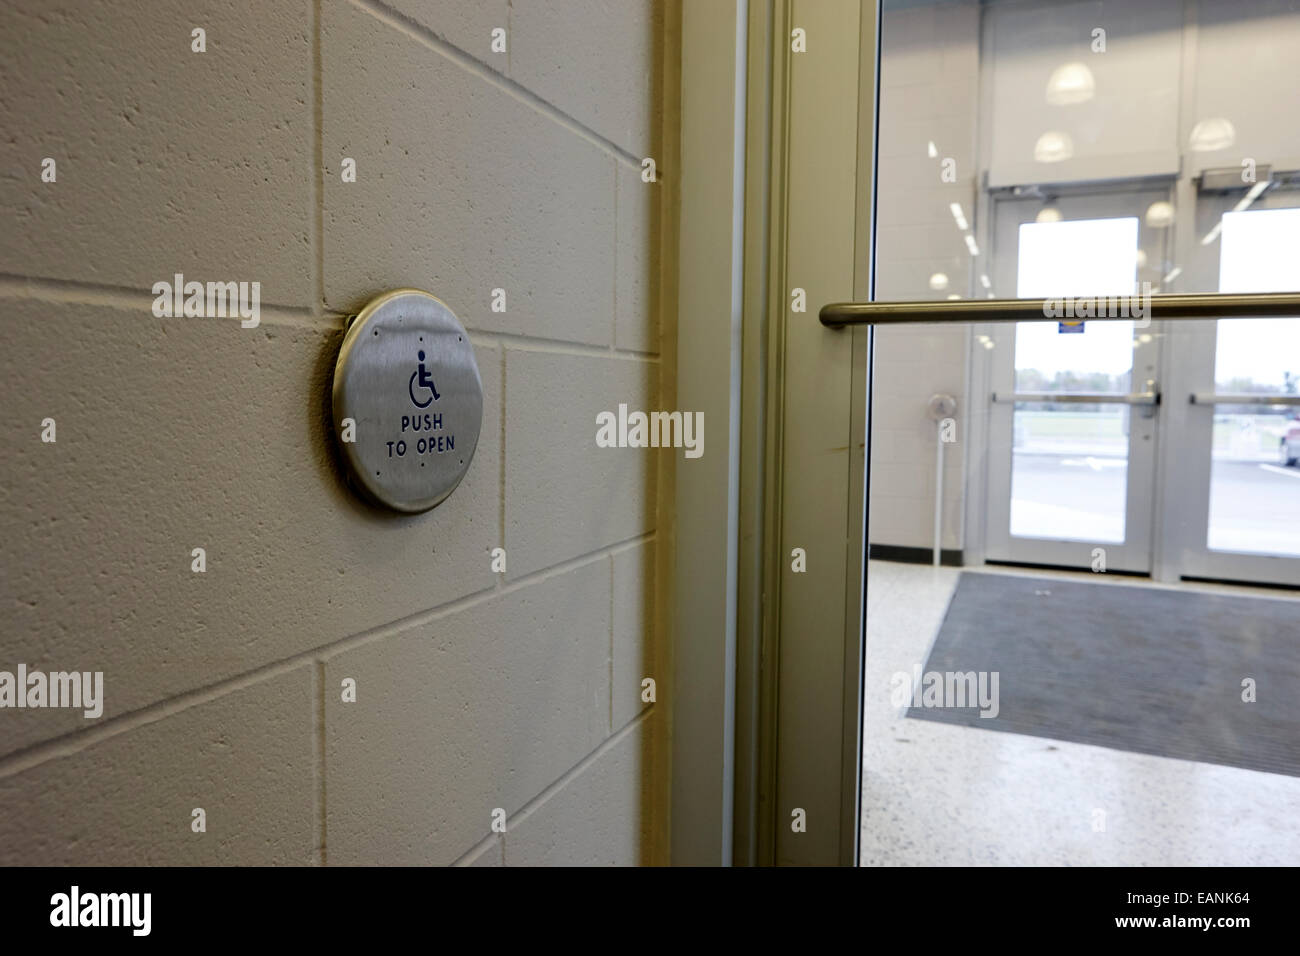 push to open disability access door operation button Saskatchewan Canada - Stock Image